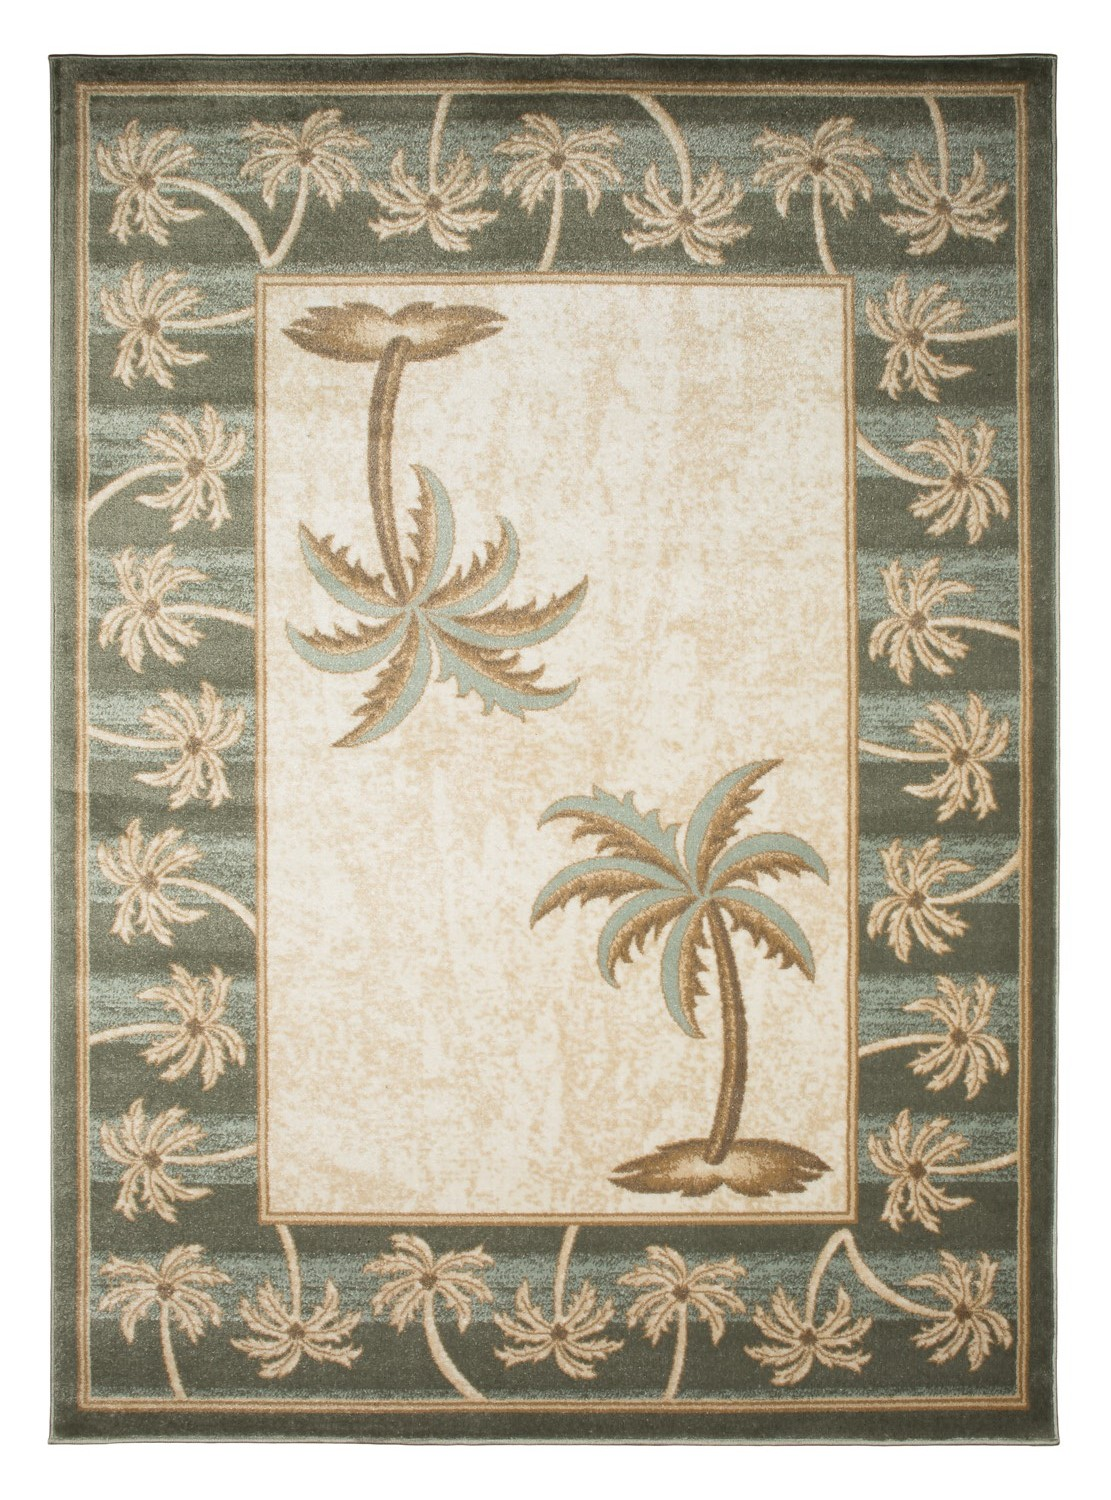 Biege Bone Bahamas Palm Tree Rug 2320 Bahamas Rugs